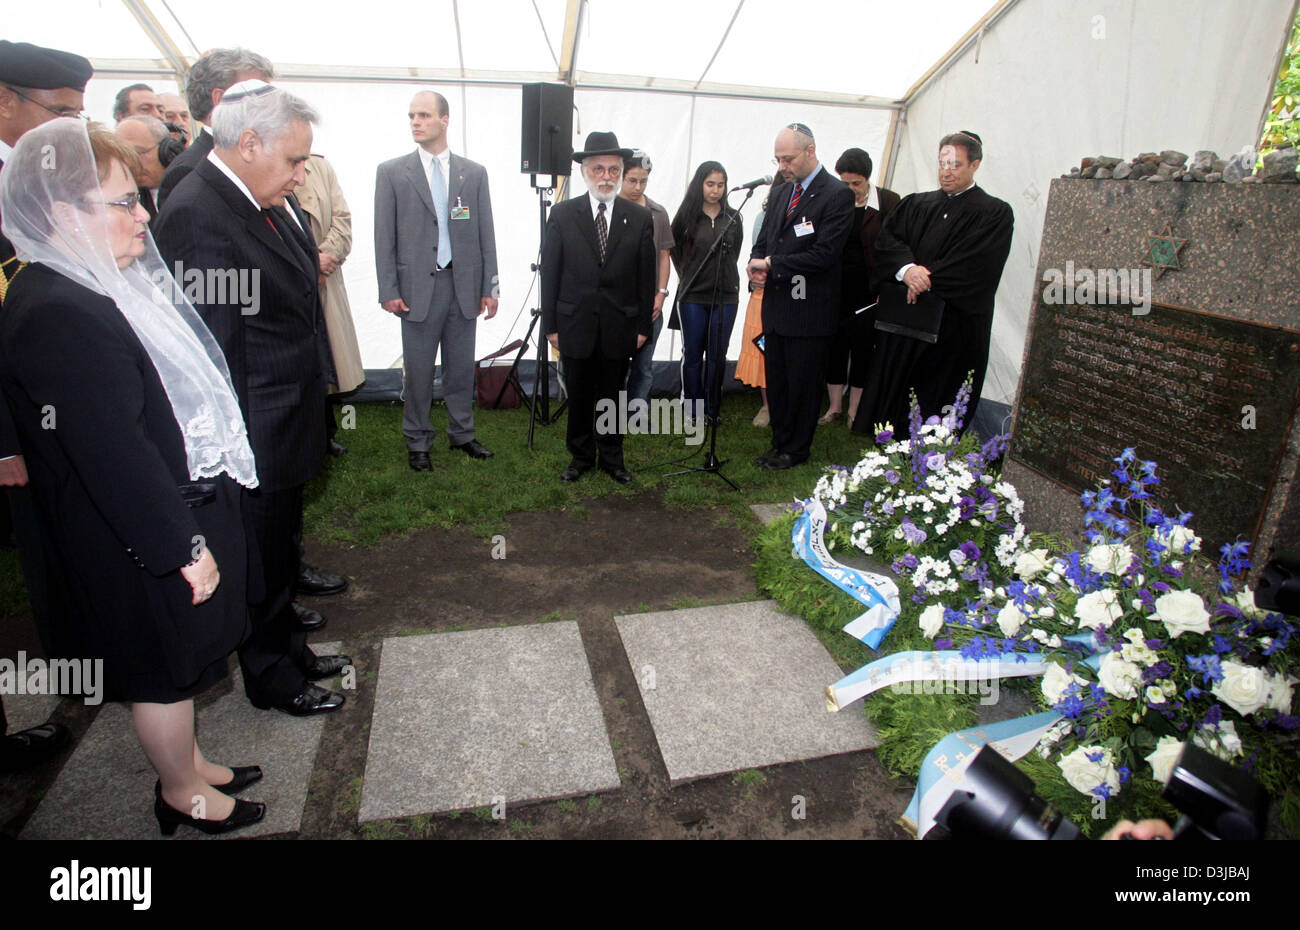 After depositing a wreath Israeli President Moshe Katsav (C), his wife Gila and the Chairman of the Jewish Community - Stock Image